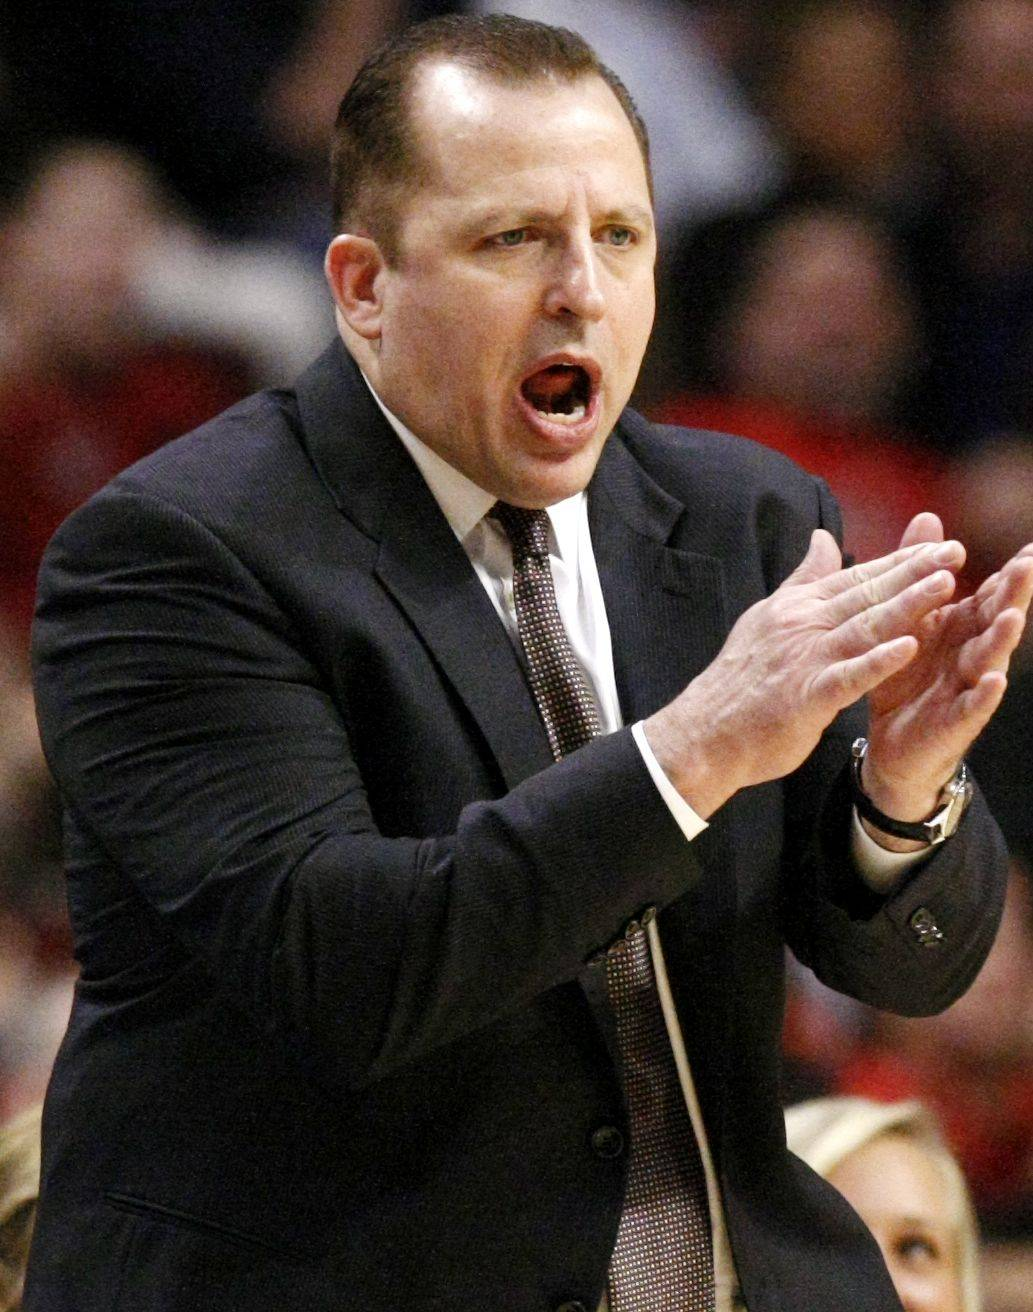 **ADVANCE FOR WEEKEND EDITIONS, MARCH 19-20 ** In this photo taken Friday, March 11, 2011, in Chicago, Chicago Bulls head coach Tom Thibodeau encourages his team during an NBA basketball game against the Atlanta Hawks. His players can't help but joke about it. They see the preparation, the hours their coach puts in and they wonder if Tom Thibodeau ever goes home.